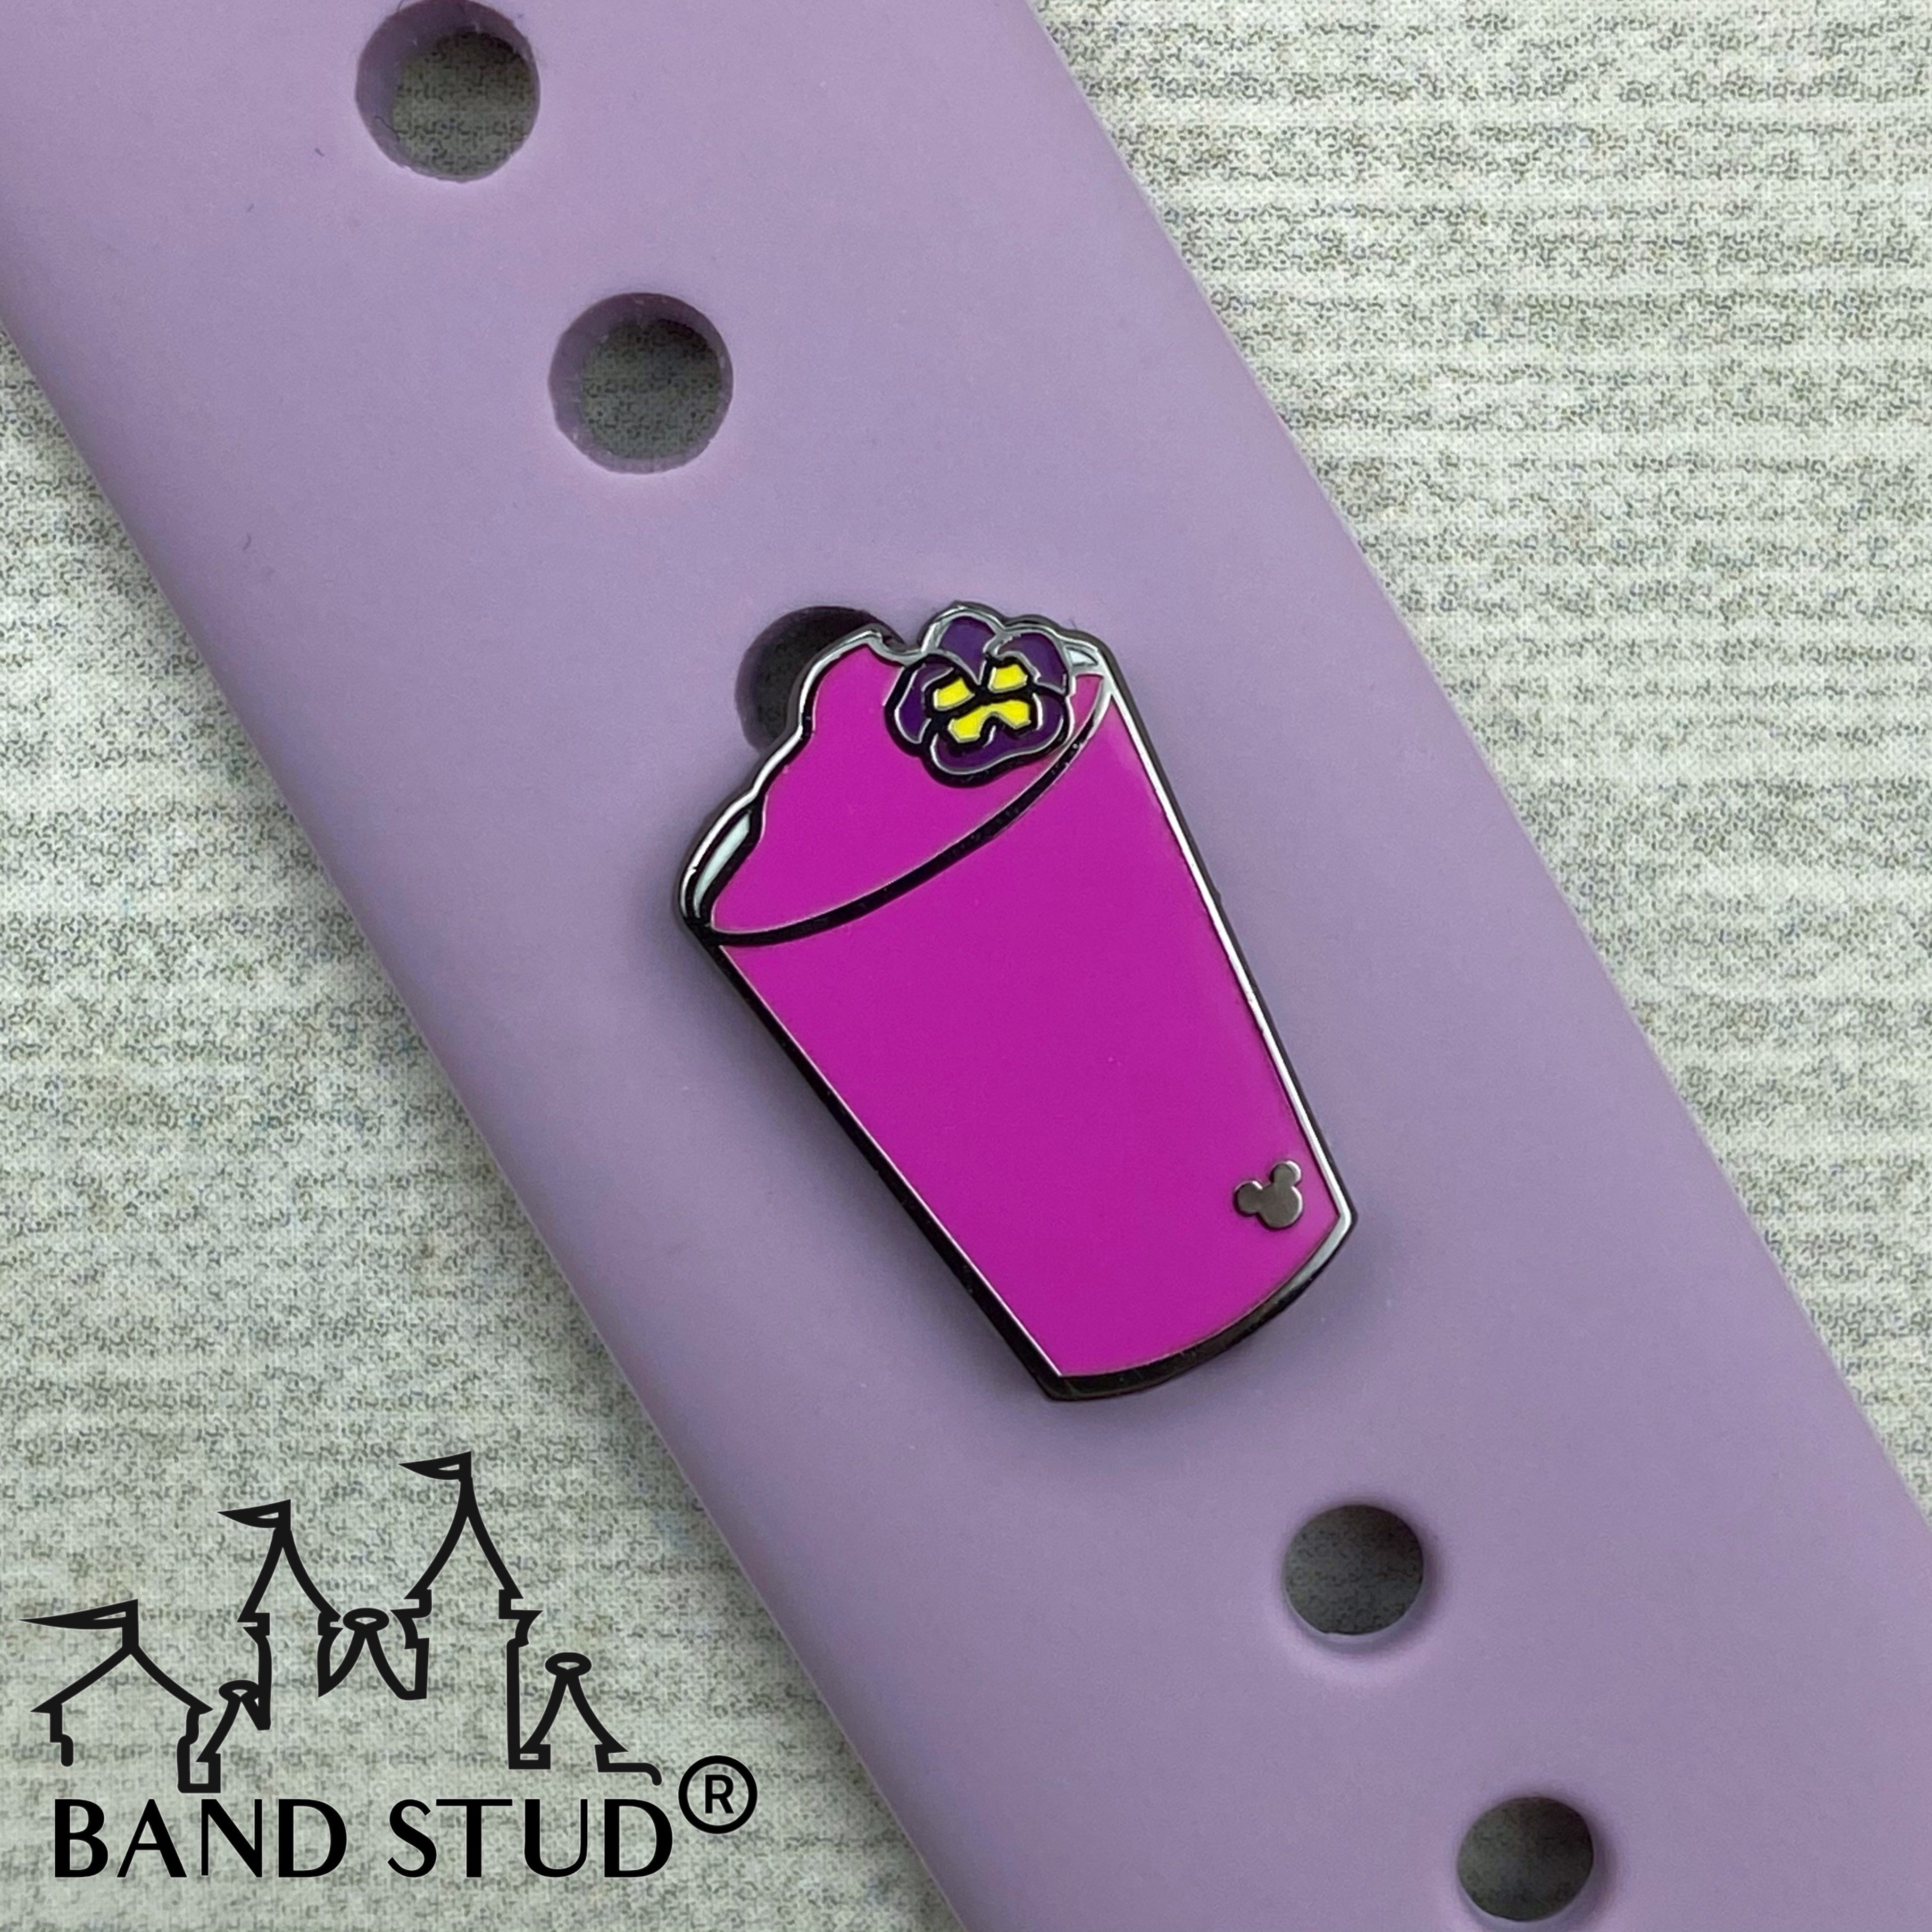 Band Stud®  - Flower and Garden - Violet Lemonade READY TO SHIP